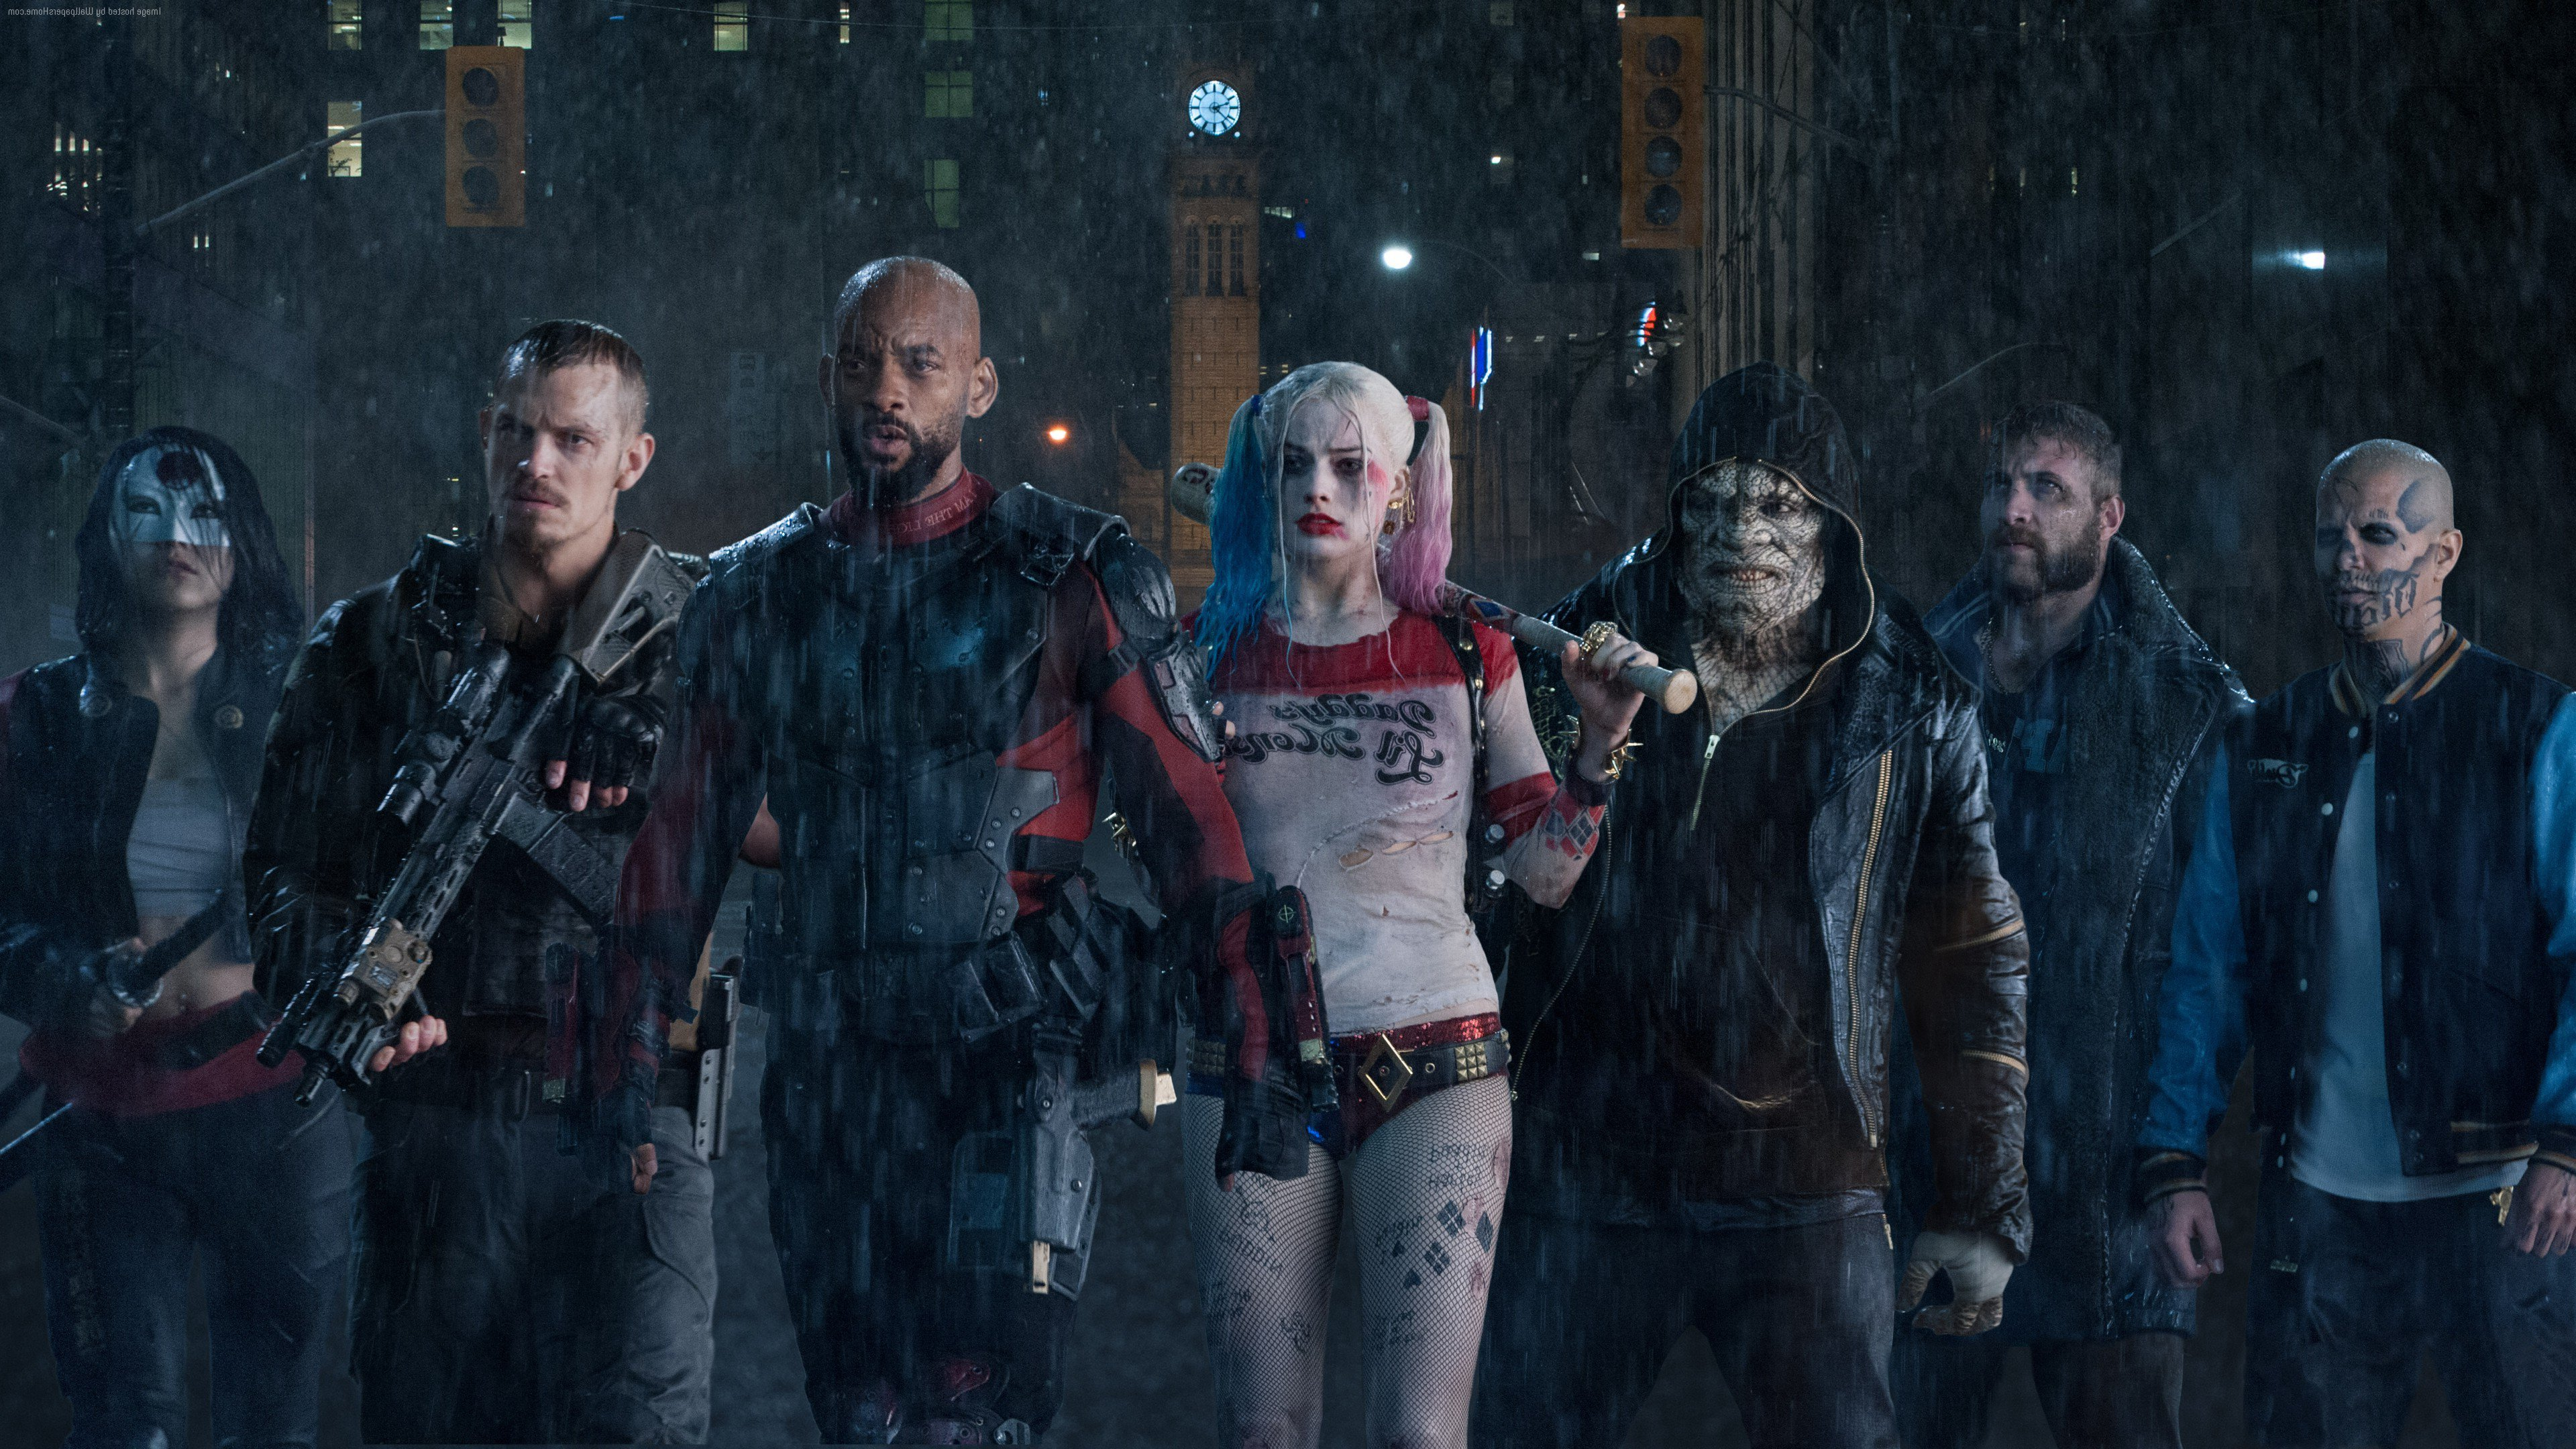 suicide squad team 1536363485 - Suicide Squad Team - suicide squad wallpapers, movies wallpapers, harley quinn wallpapers, death stroke wallpapers, deadshot wallpapers, 2016 movies wallpapers